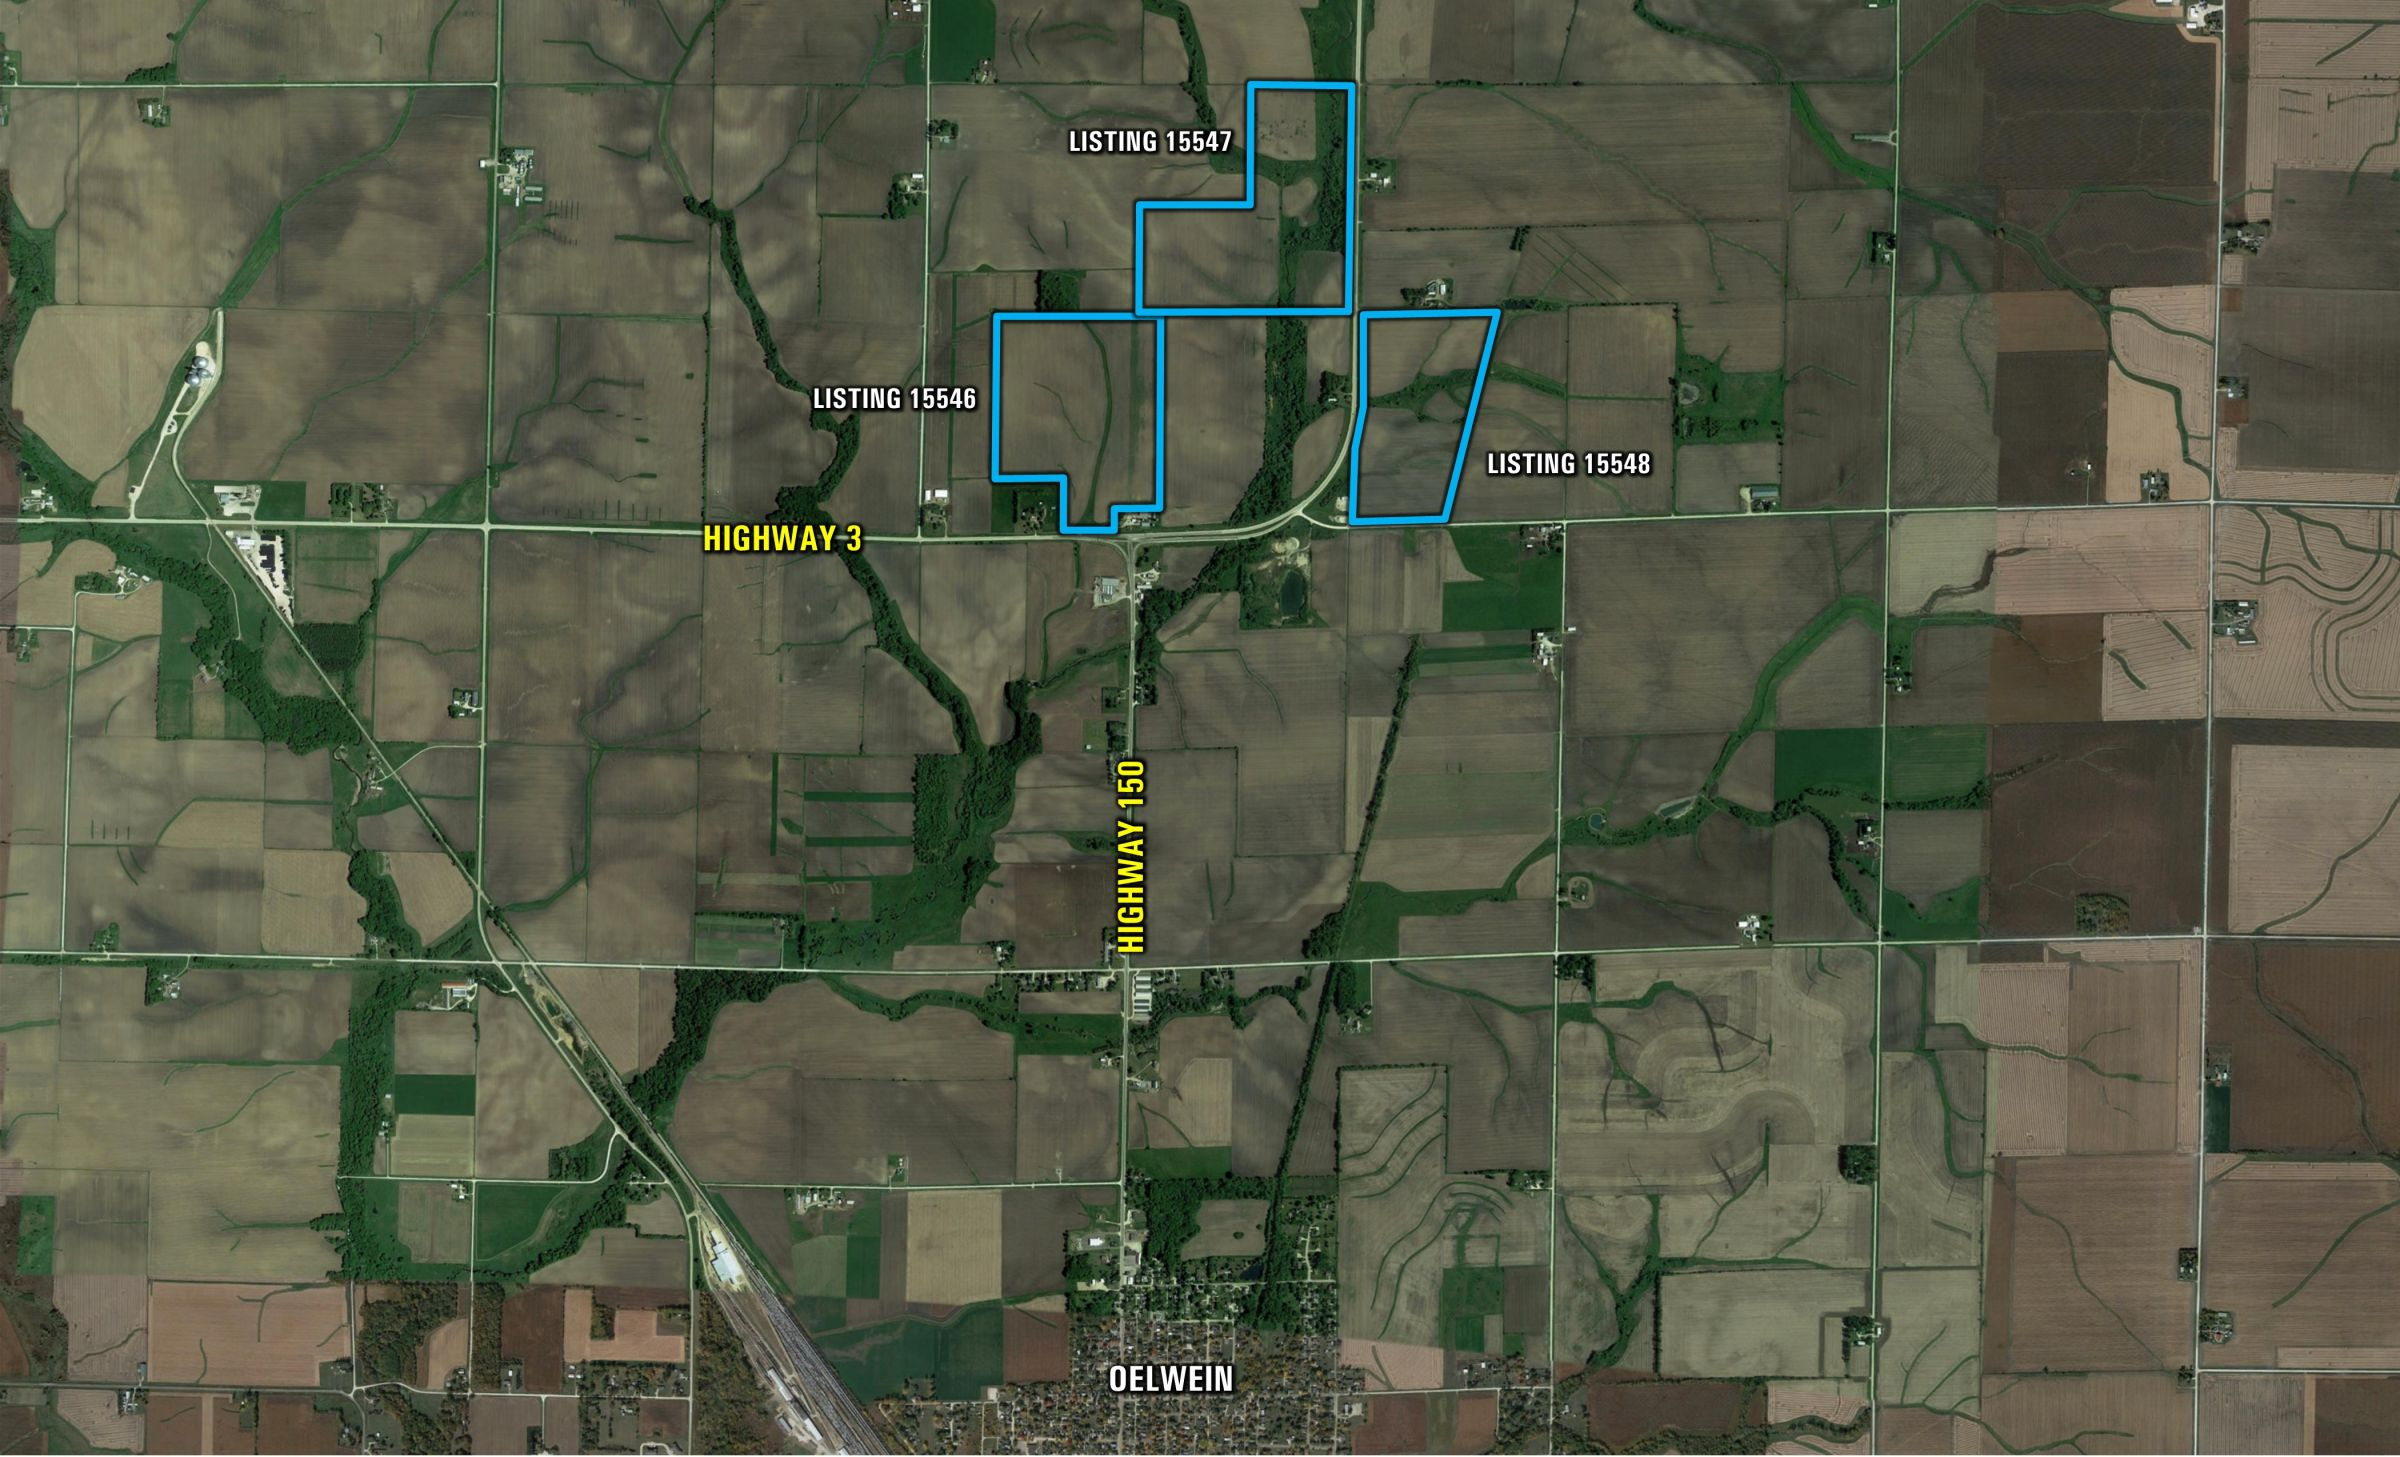 land-fayette-county-iowa-117-acres-listing-number-15547-0-2021-05-25-211844.jpg